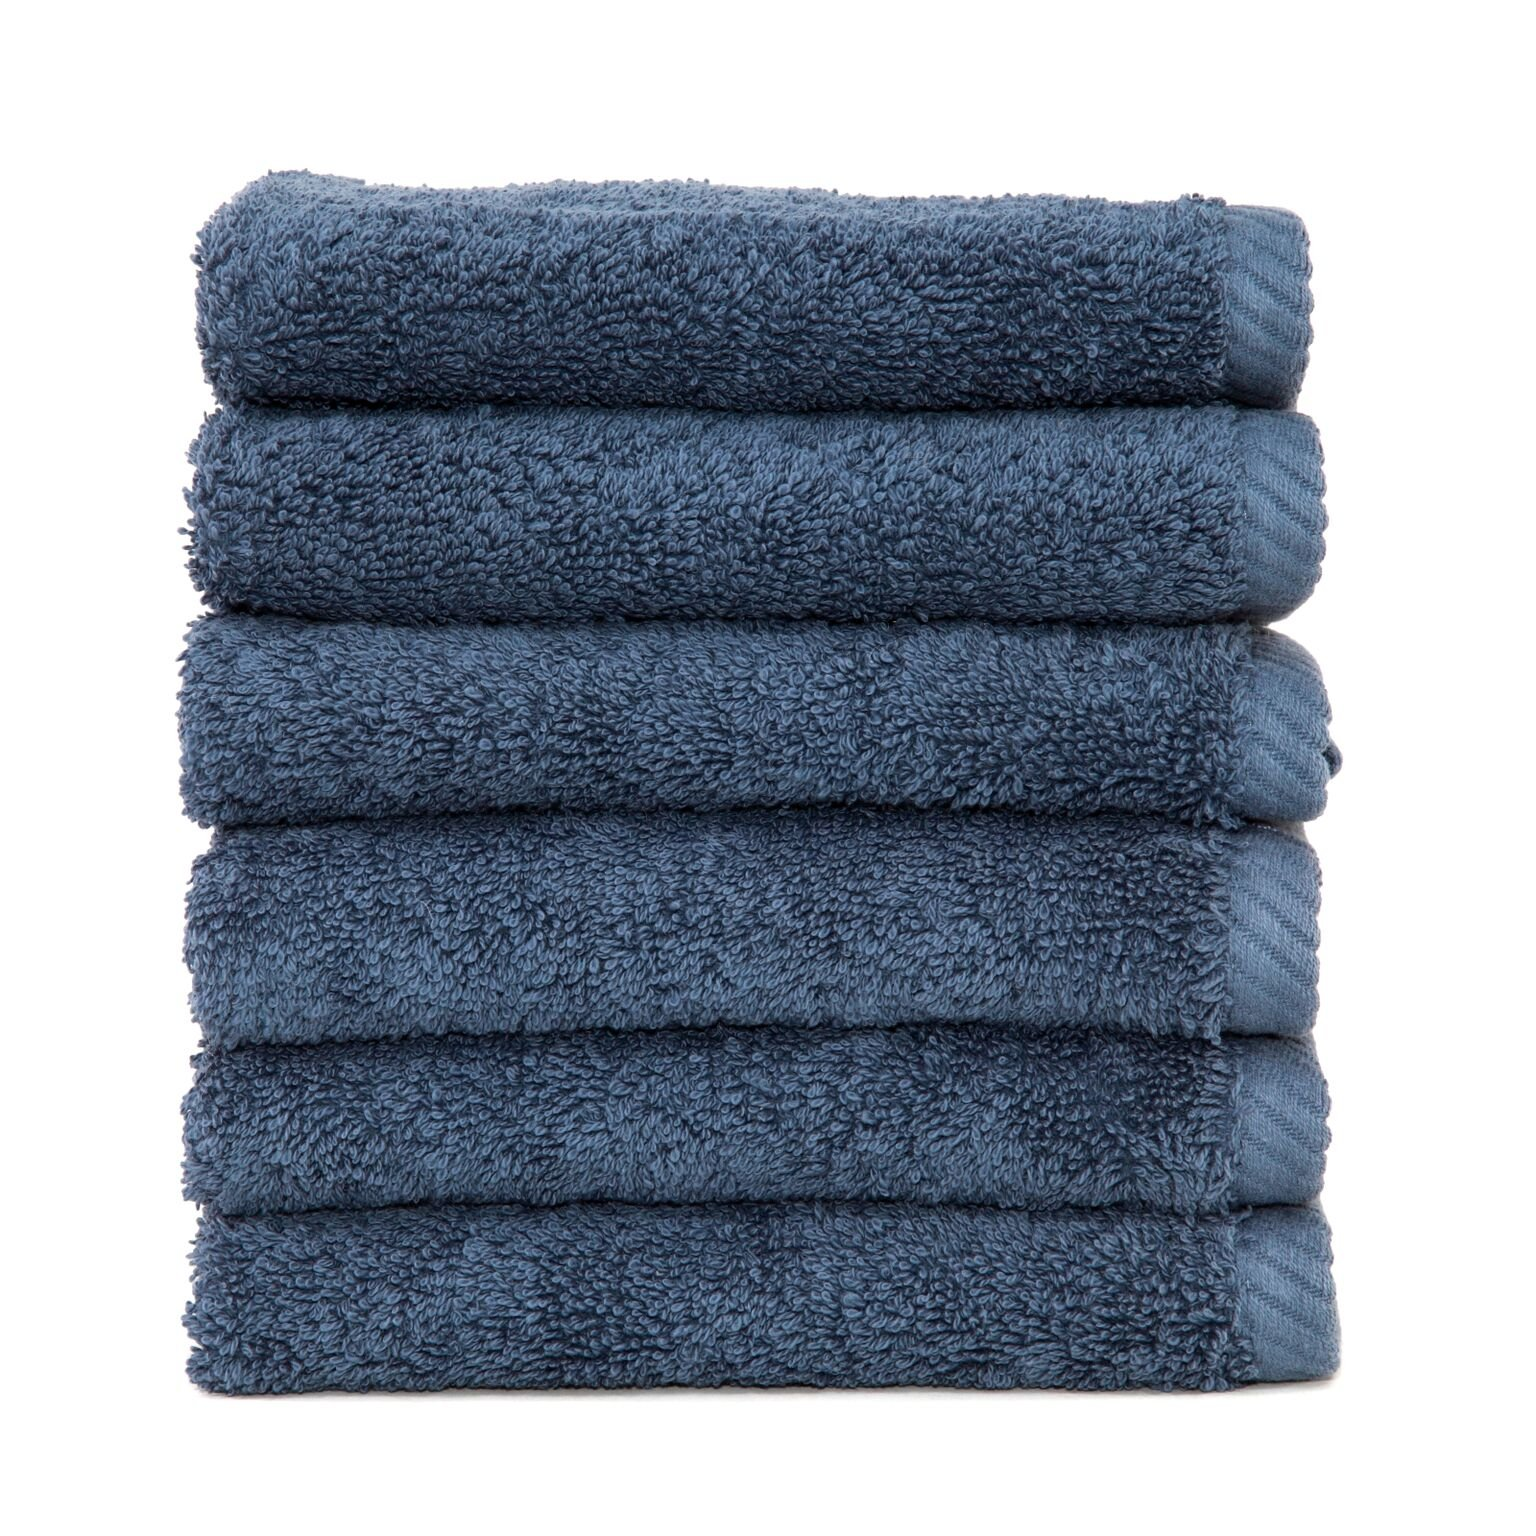 Linum Home Textiles Soft Twist Premium Authentic Soft 100% Turkish Cotton Luxury Hotel Collection Washcloth, Set of 6, Midnight Blue